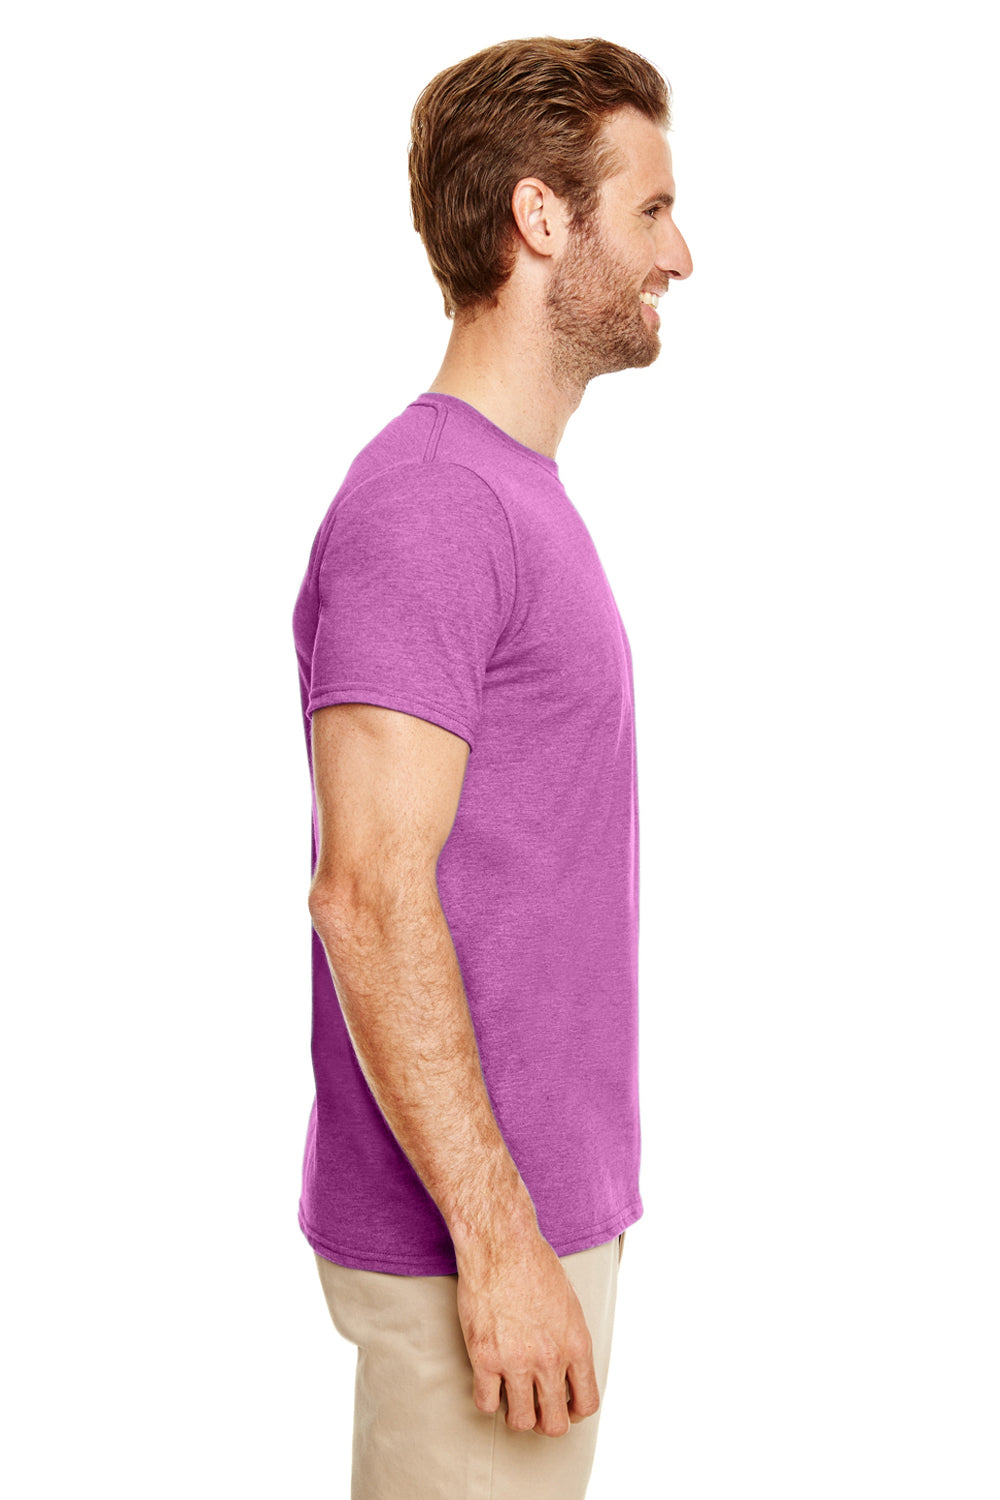 Gildan G640 Mens Softstyle Short Sleeve Crewneck T-Shirt Heather Orchid Purple Side